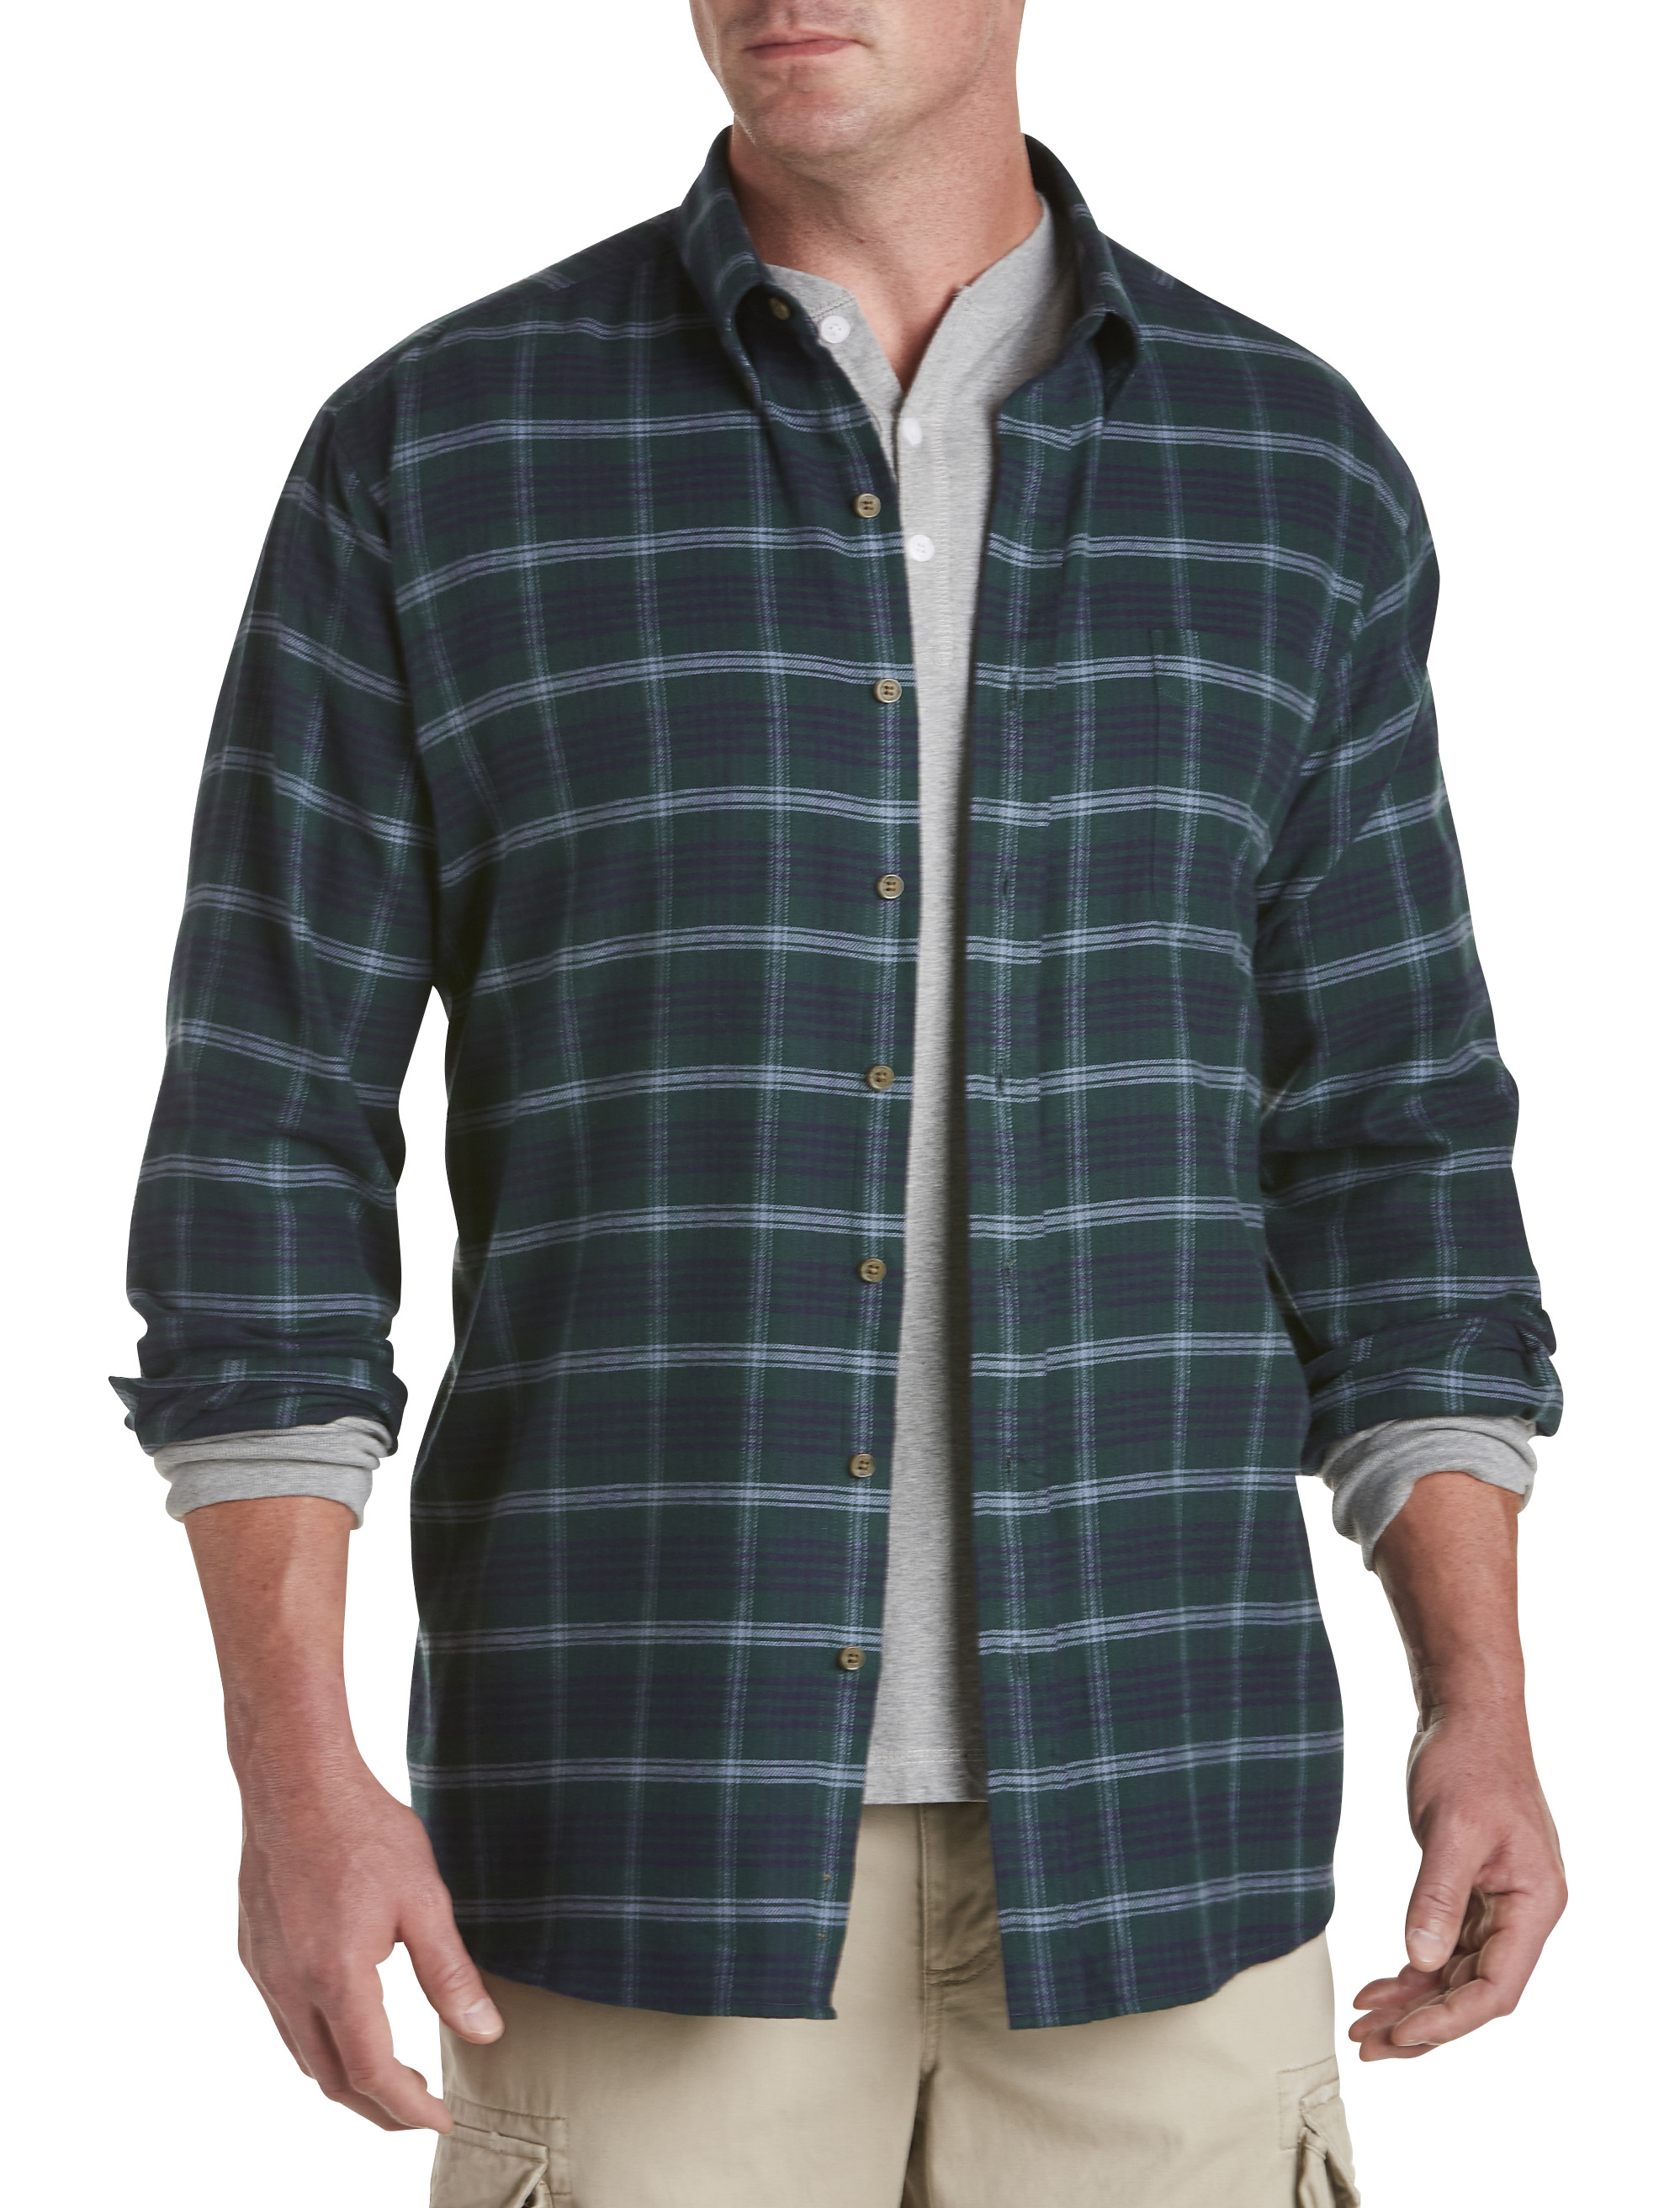 Harbor Bay Medium Plaid Flannel Shirt | Tuggl